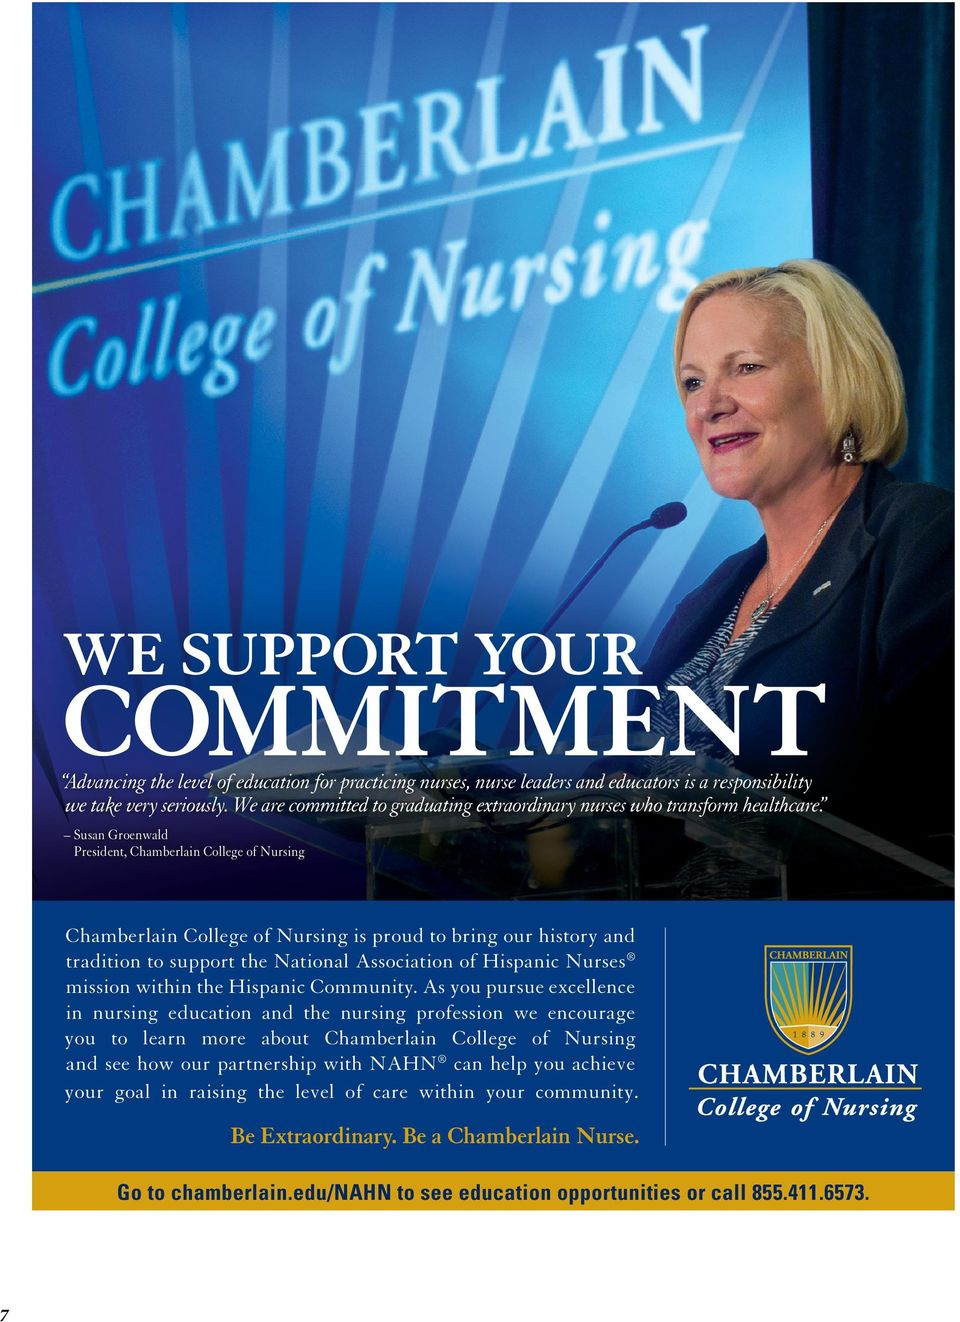 Susan Groenwald President, Chamberlain College of Nursing Chamberlain College of Nursing is proud to bring our history and tradition to support the National Association of Hispanic Nurses mission